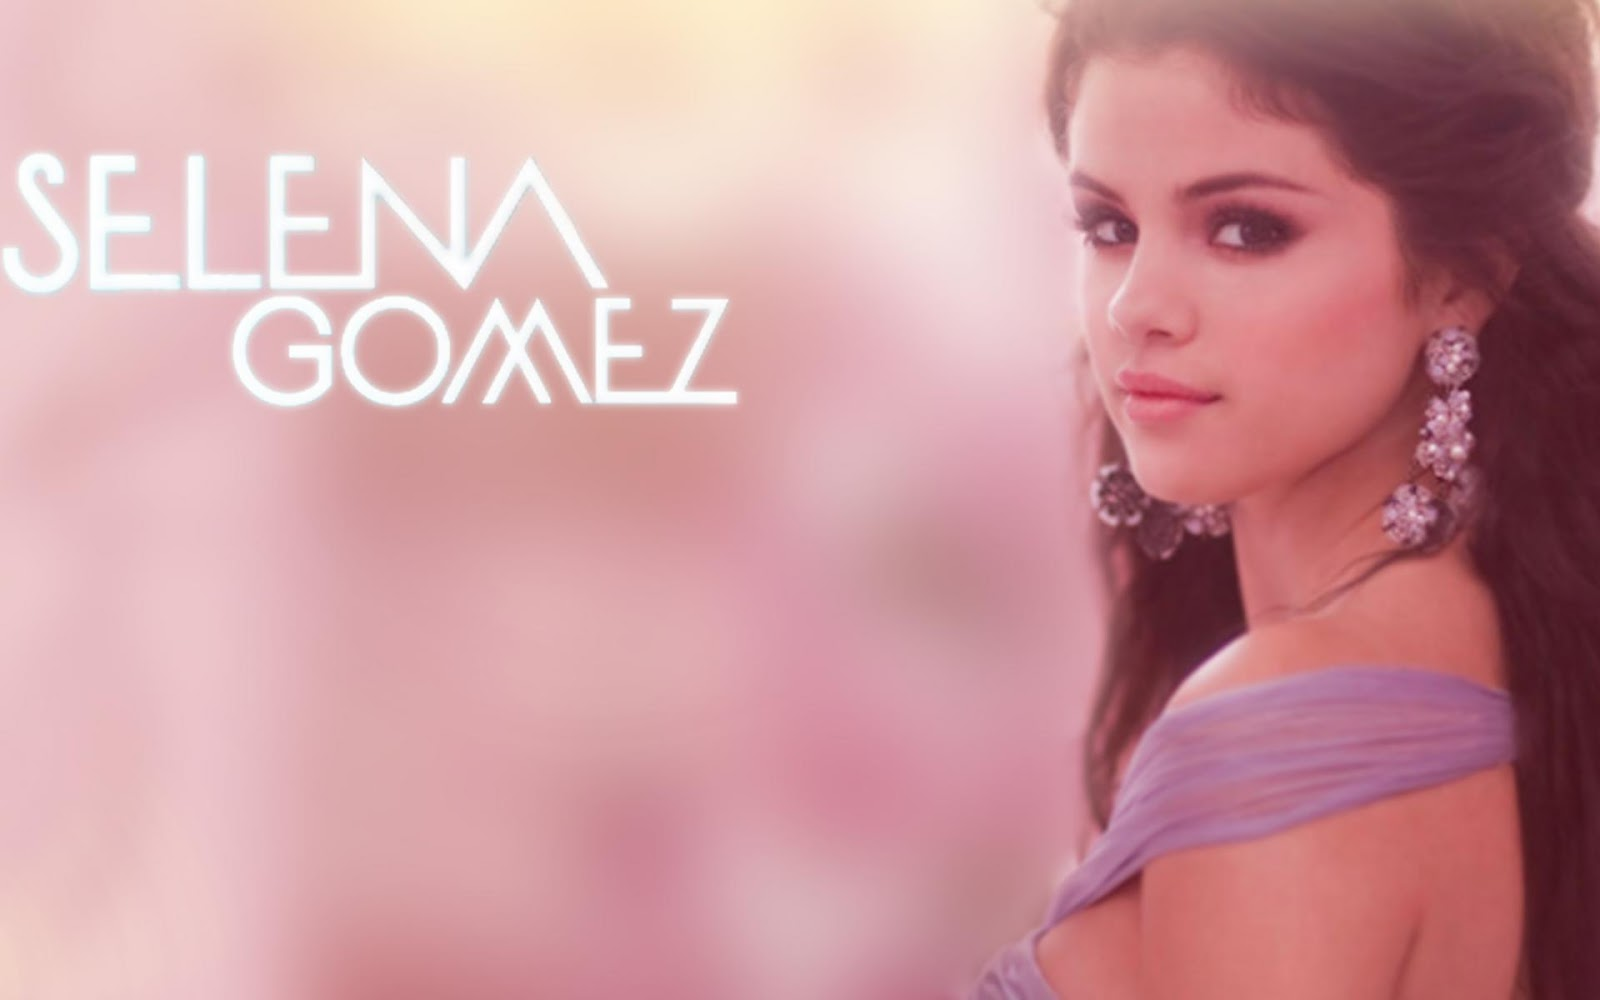 http://4.bp.blogspot.com/-OdgeRhKofL4/UCy9uVUbpDI/AAAAAAAAEvw/4XeXTZXvYTw/s1600/selena-gomez-a-year-without-rain-a-a-year-without-rain-abstract-actor-actress-alex-channel-demi-demi-lovato-disney-gomex-gomez-harper-hd-1200x1920.jpg